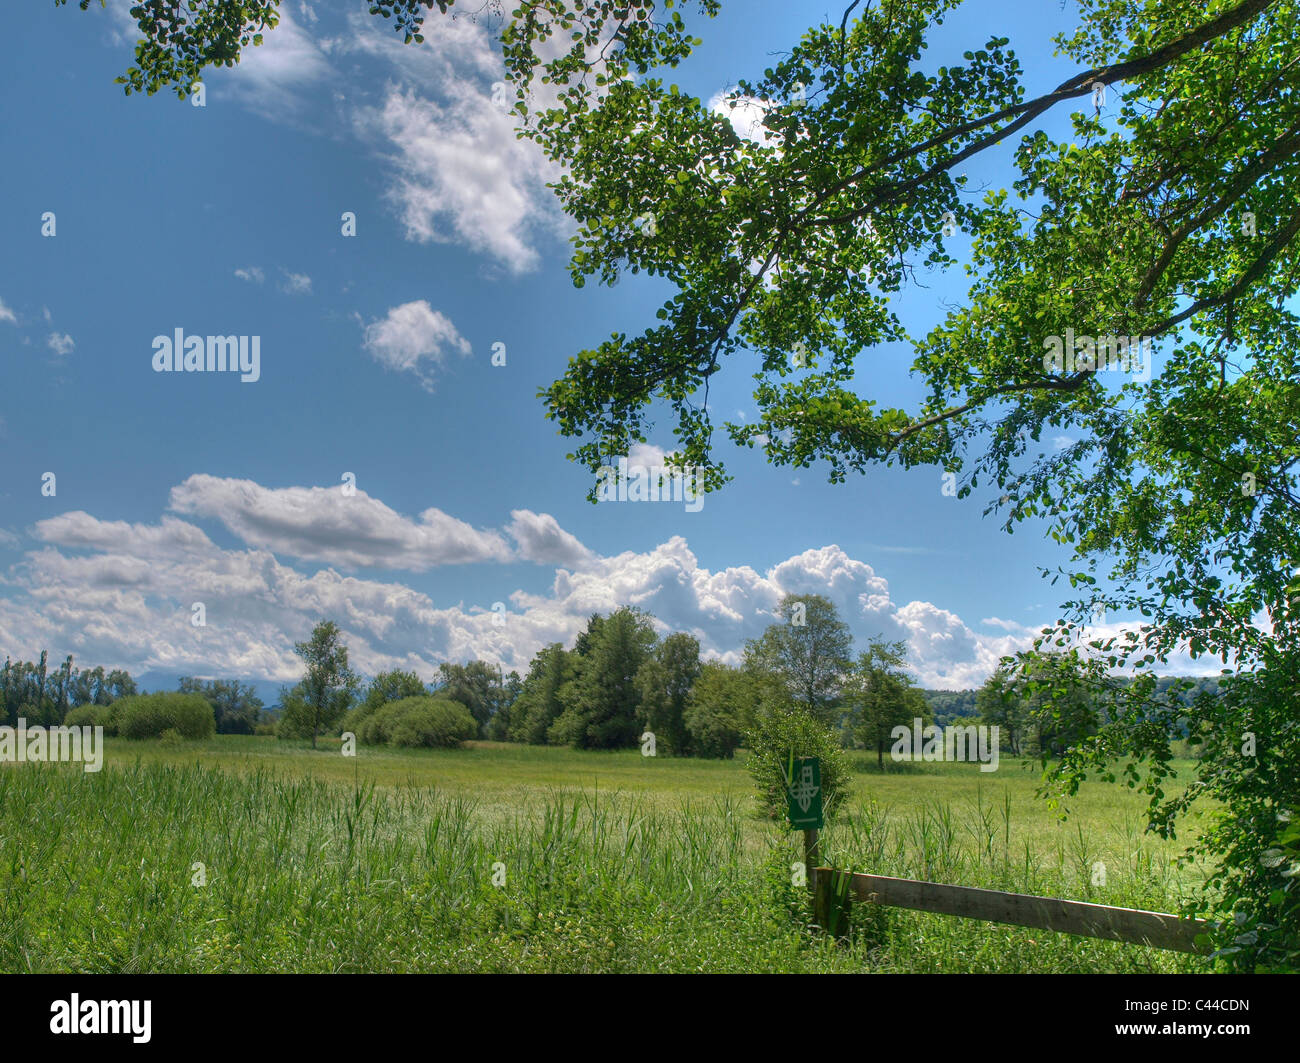 Trees, grab lake, green, nature reserve, reed, protection of birds, clouds, lakes, canton Zurich, Switzerland, lake, - Stock Image